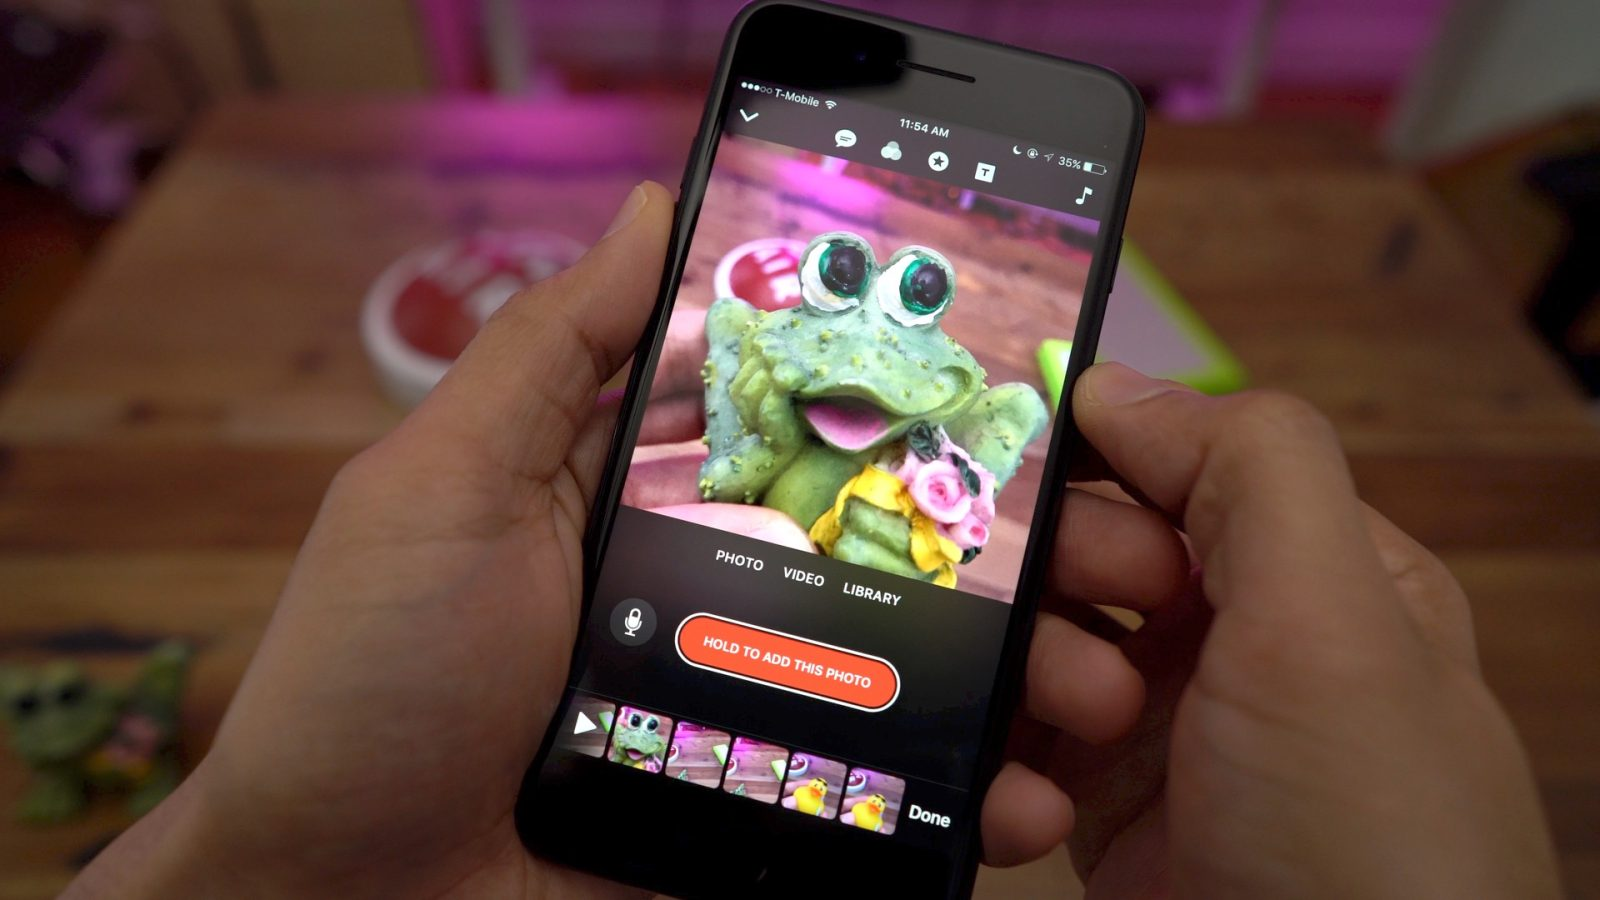 Apple's Clips app upgraded with retro camcorder filter, new stickers, Live Titles, ClassKit support, more thumbnail